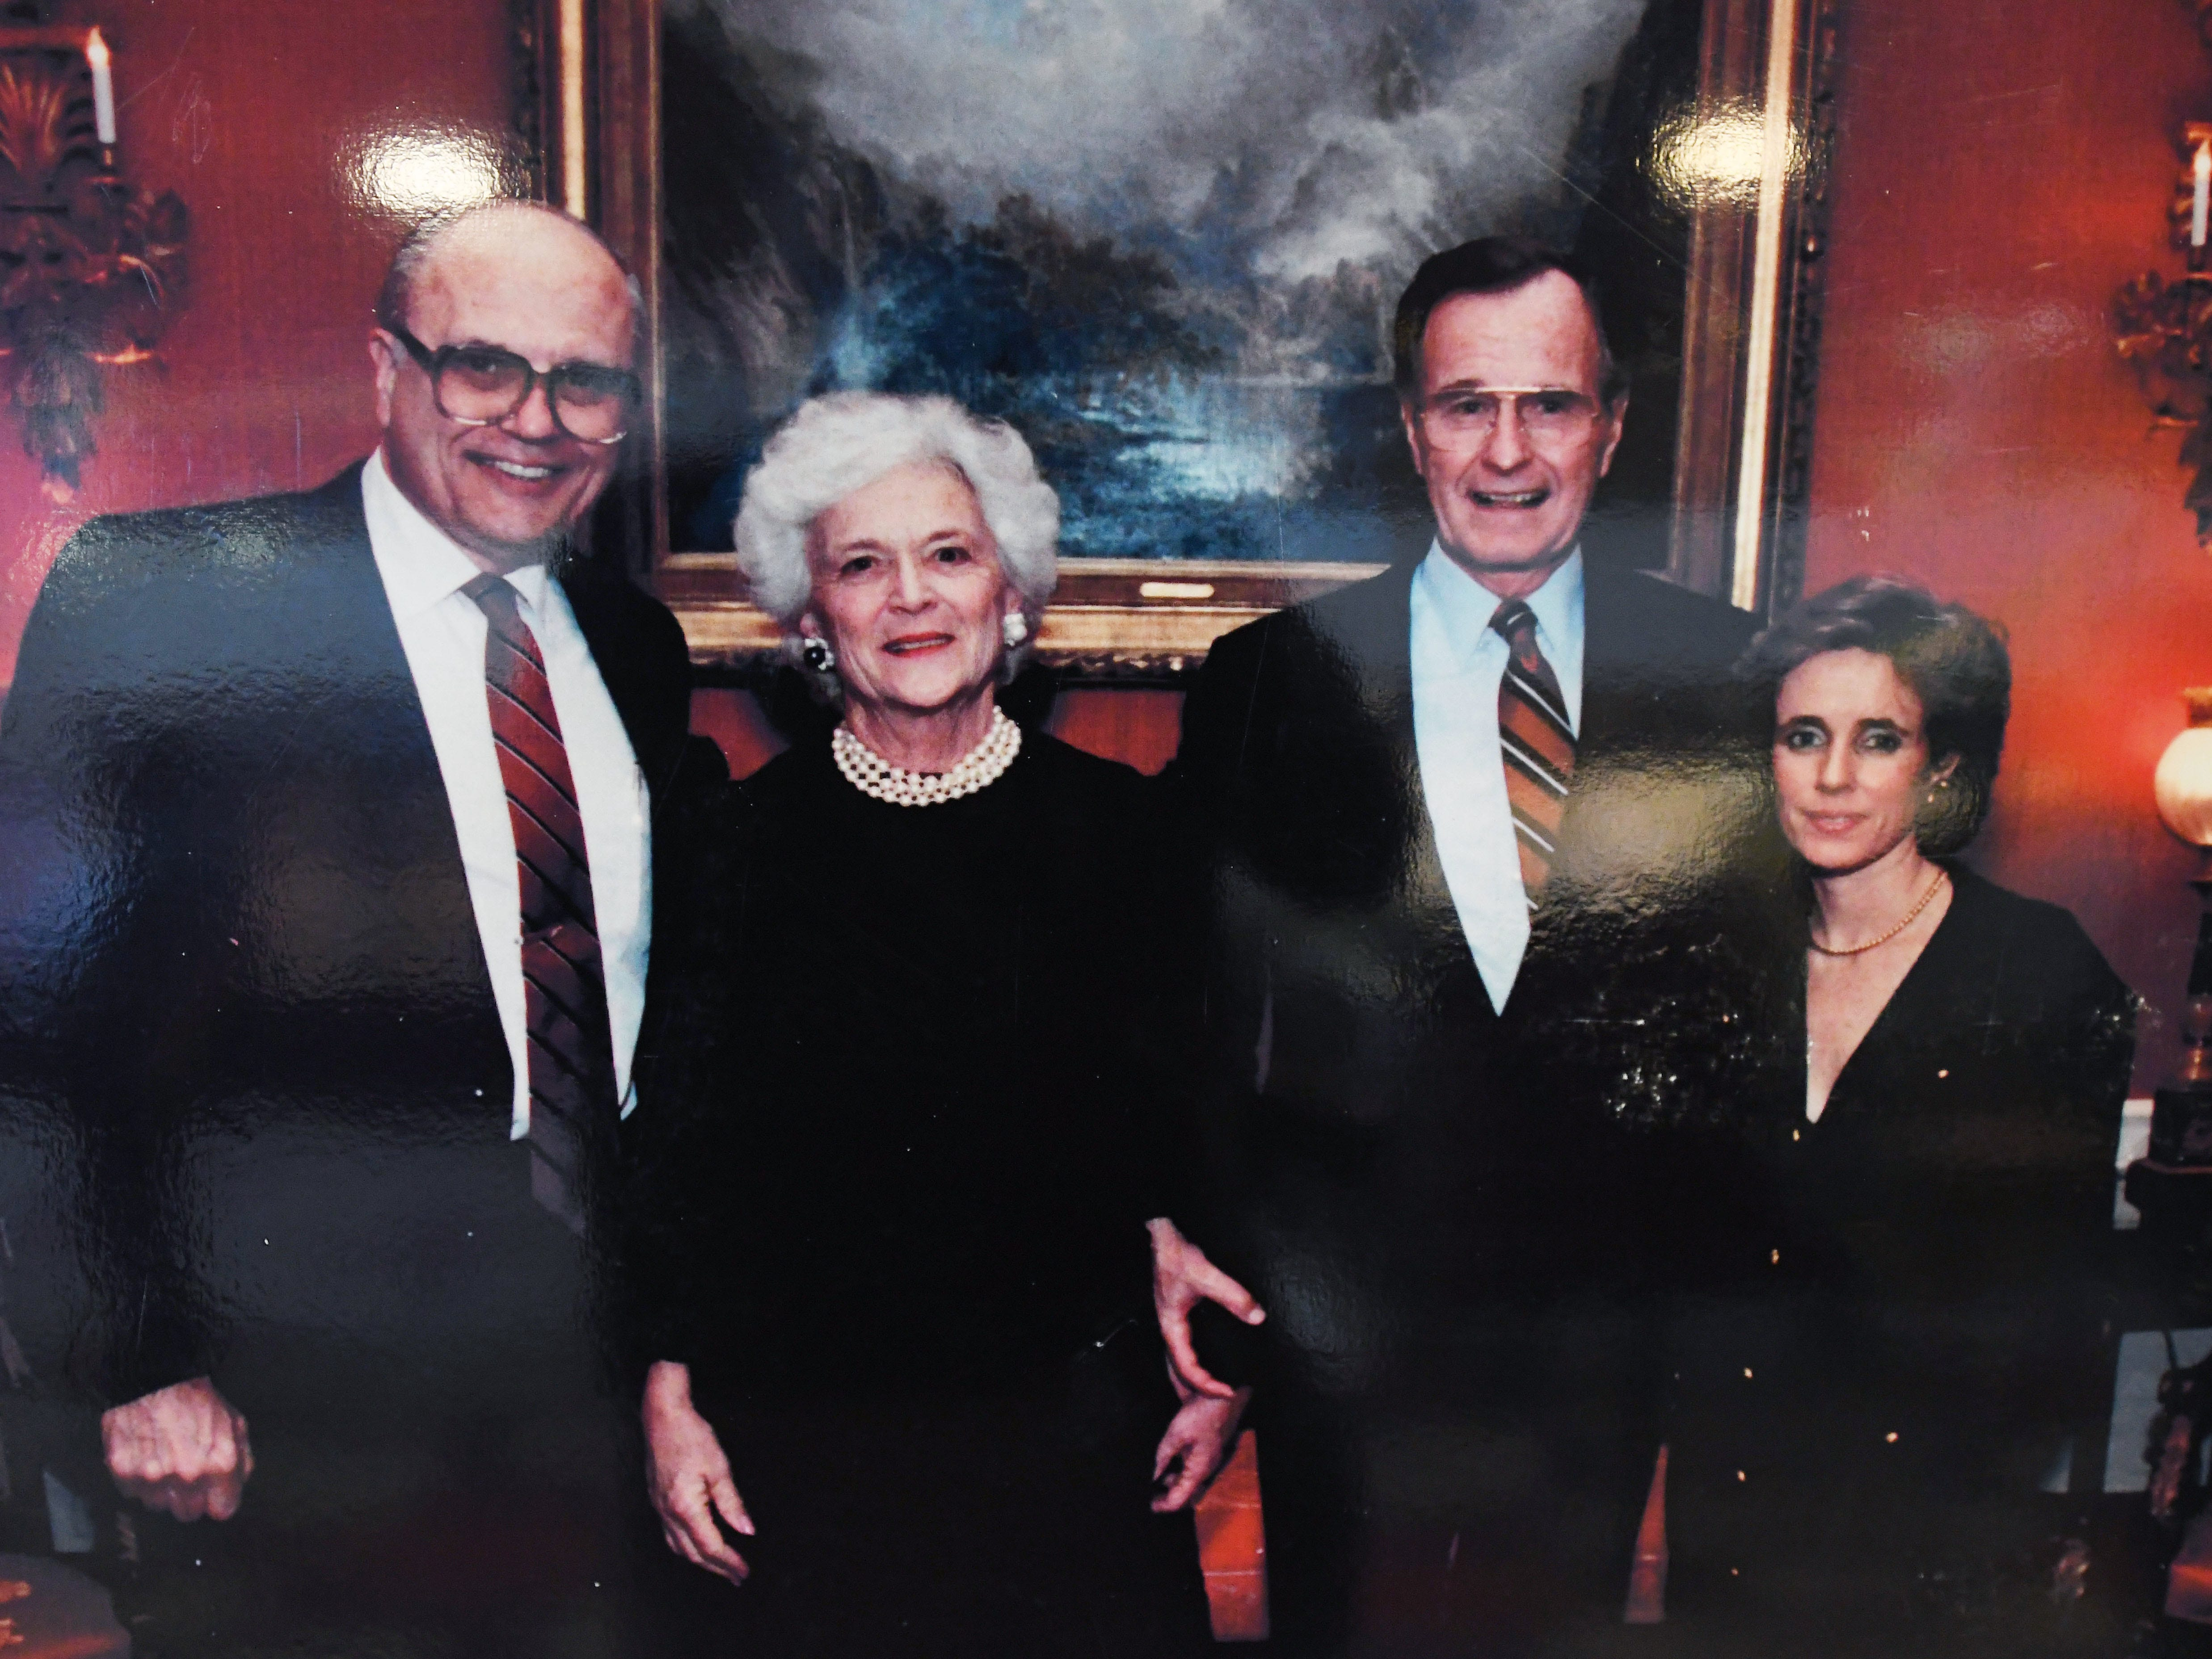 From left, U.S. Rep. John Dingell, first lady Barbara Bush, President George H.W. Bush and Debbie Dingell, circa 1990.